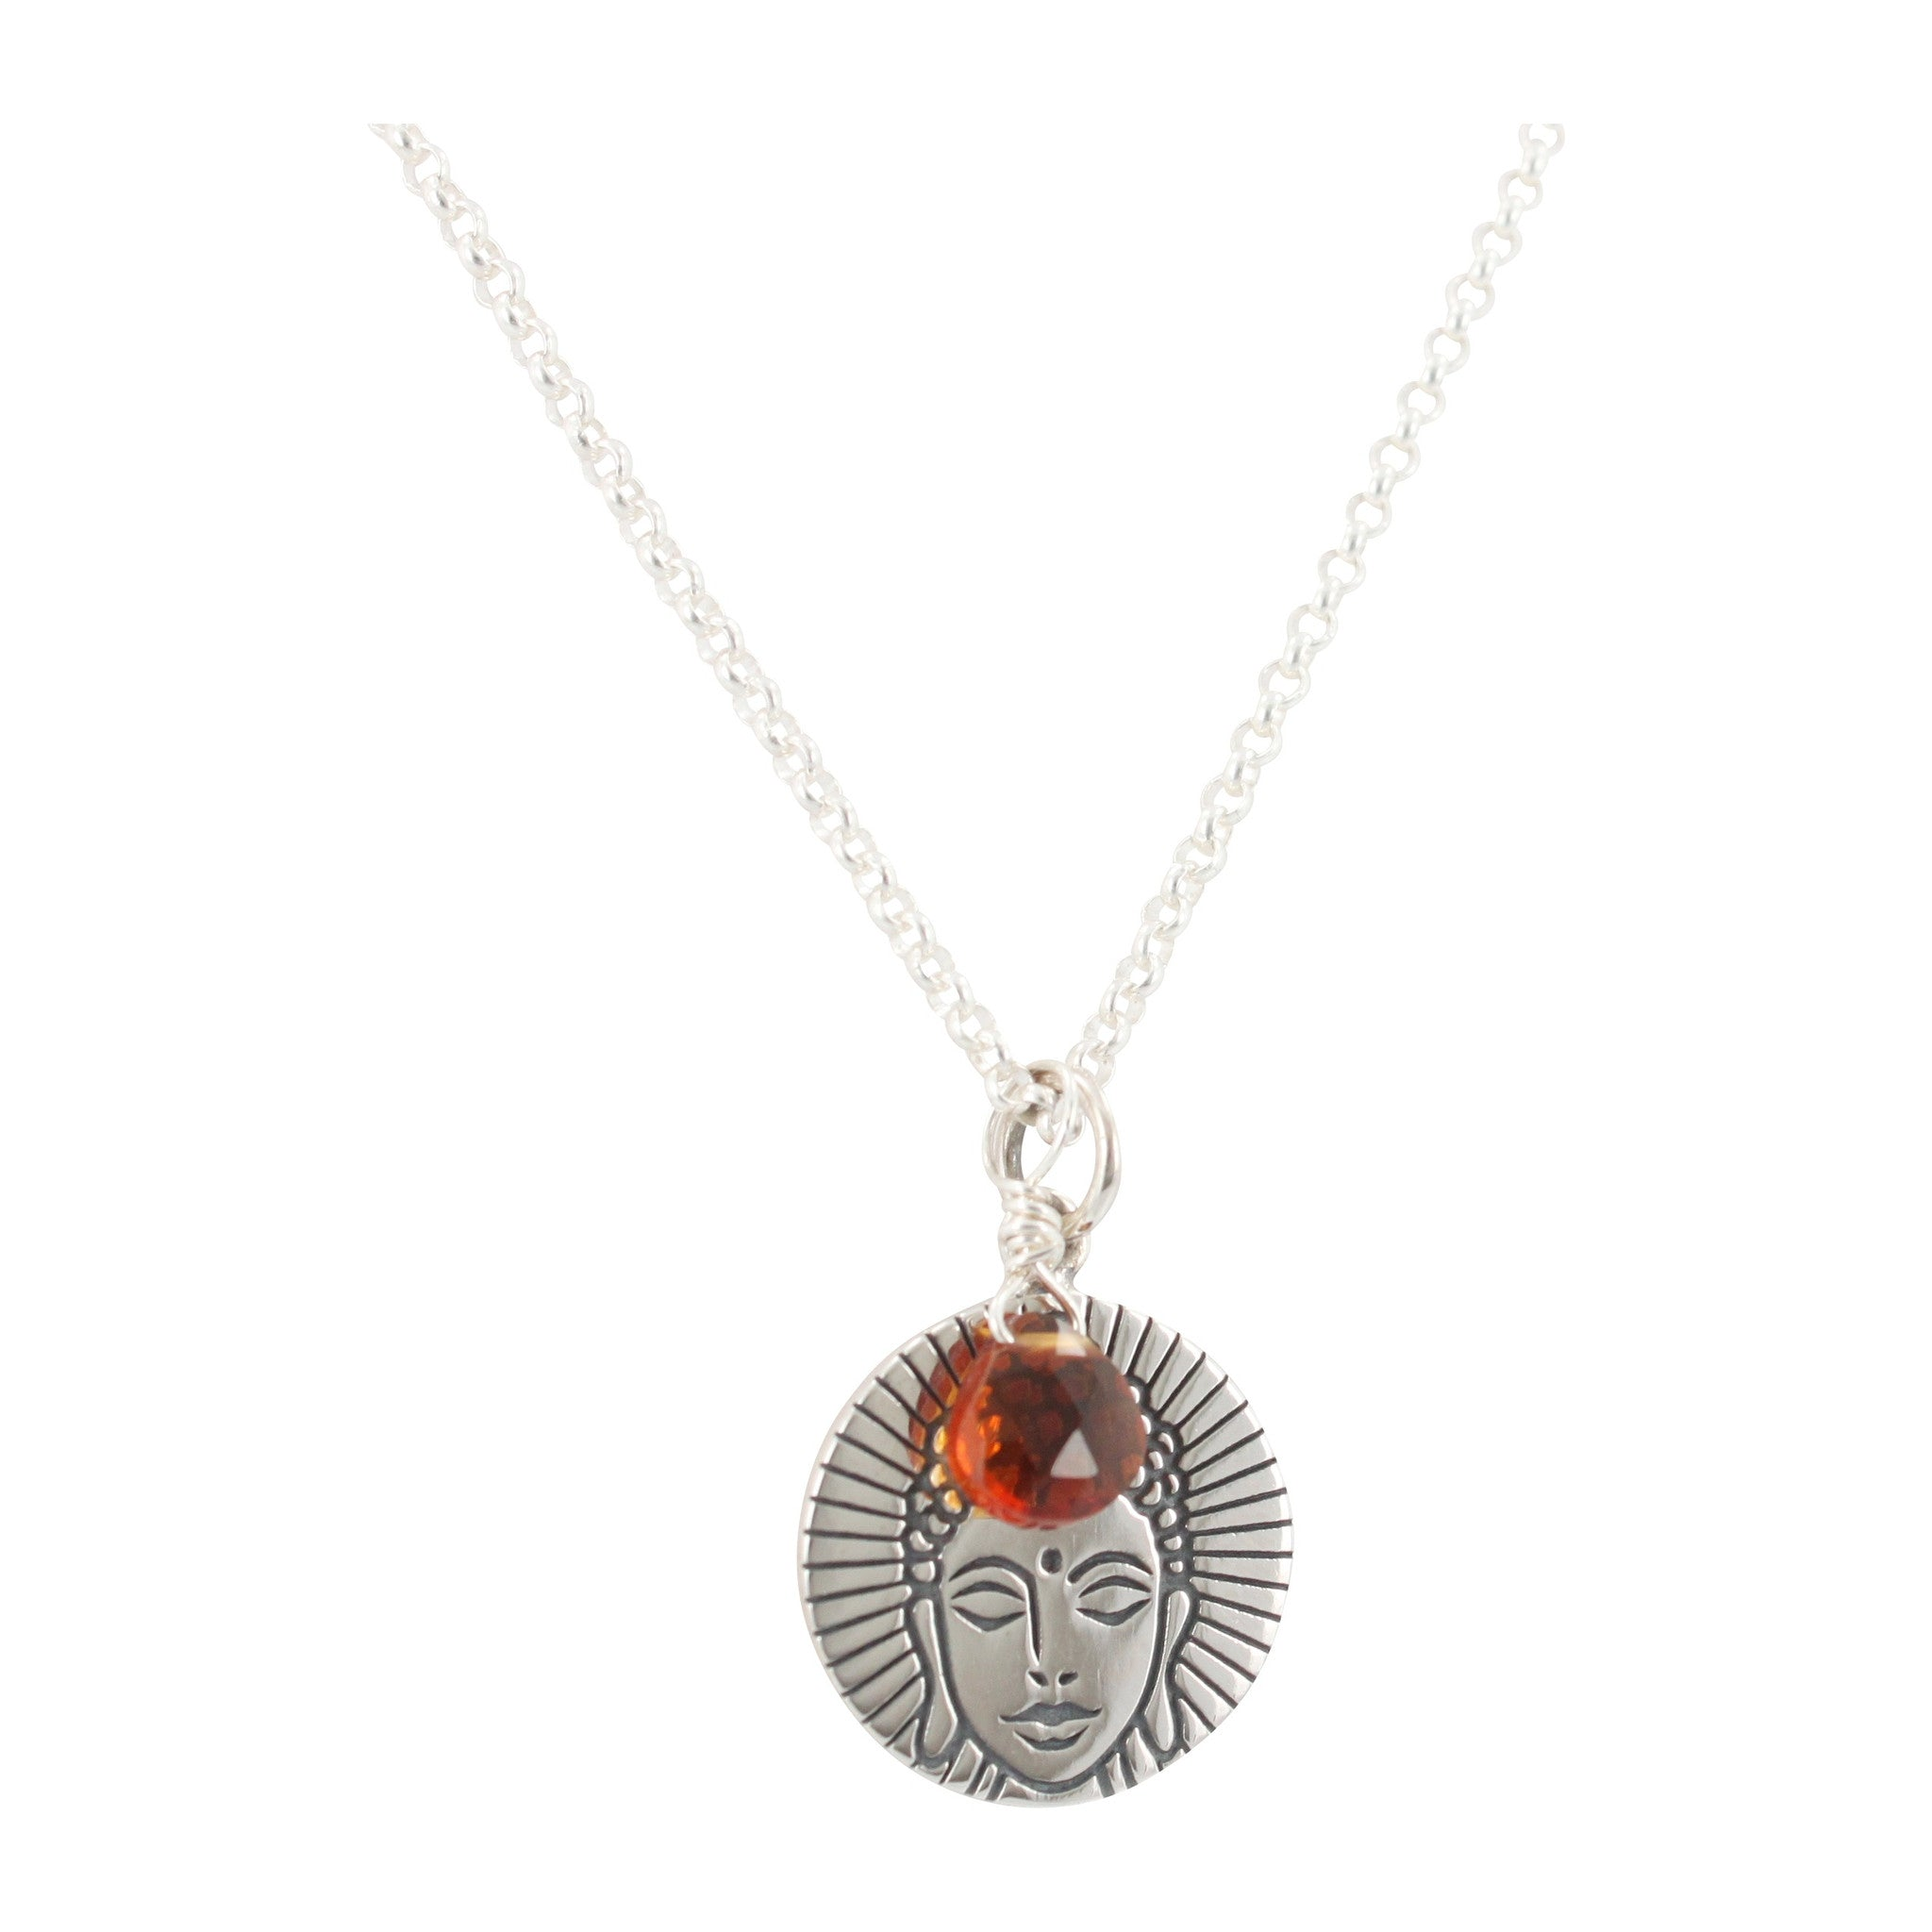 necklace jewelry products gemstone michaels sheva carnelian orbiter designer jan